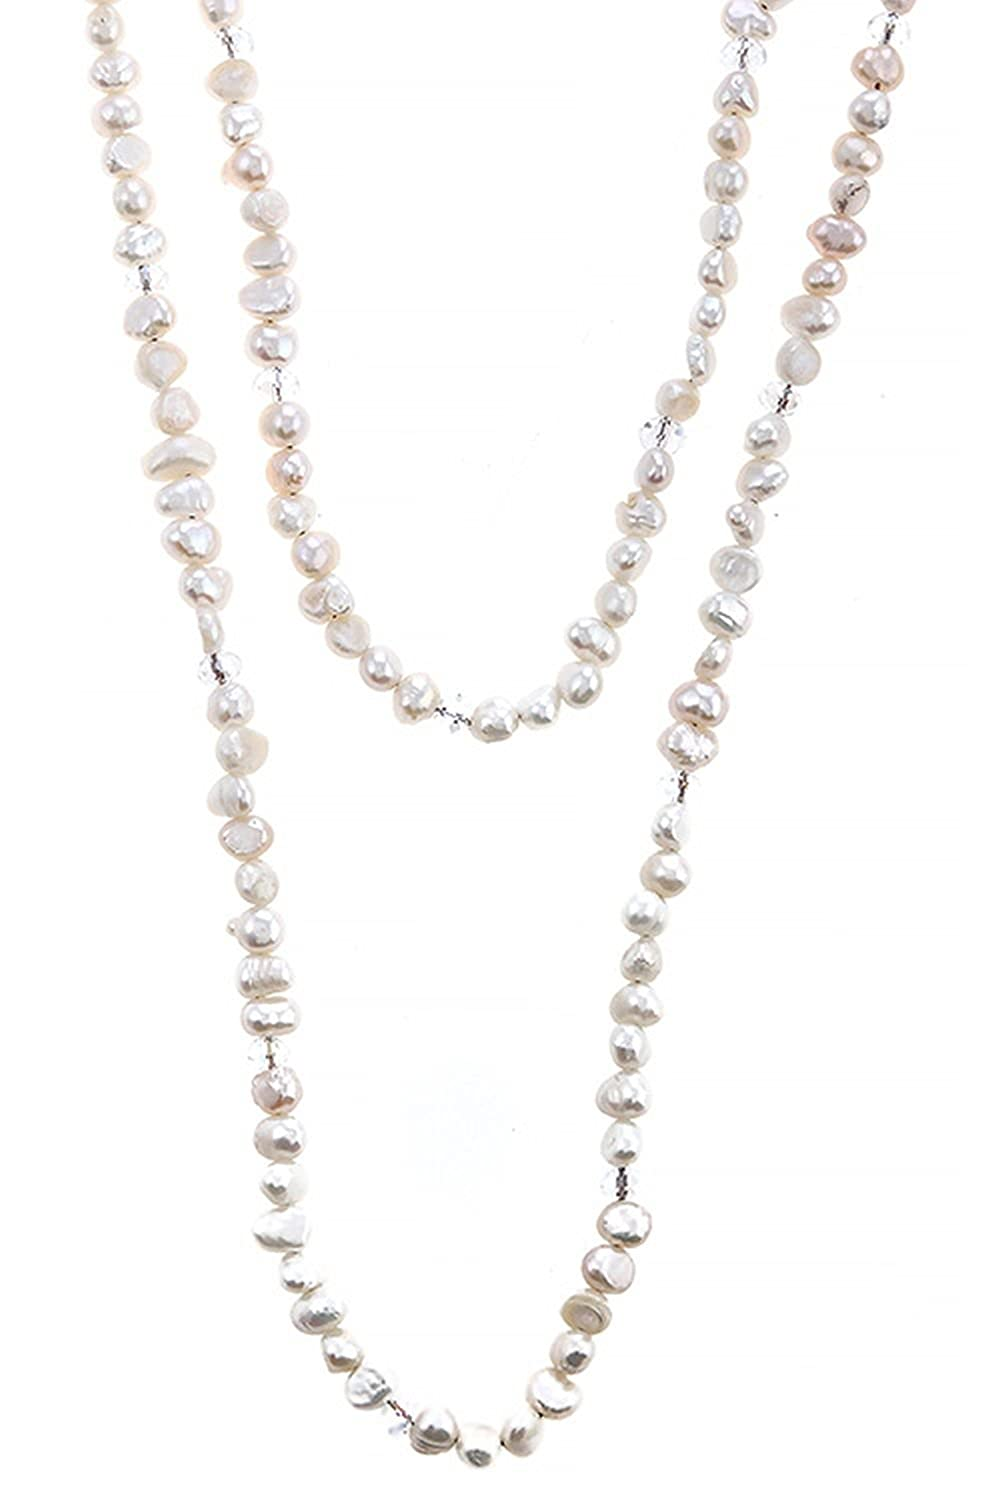 KARMAS CANVAS FRESH WATER PEARL NECKLACE